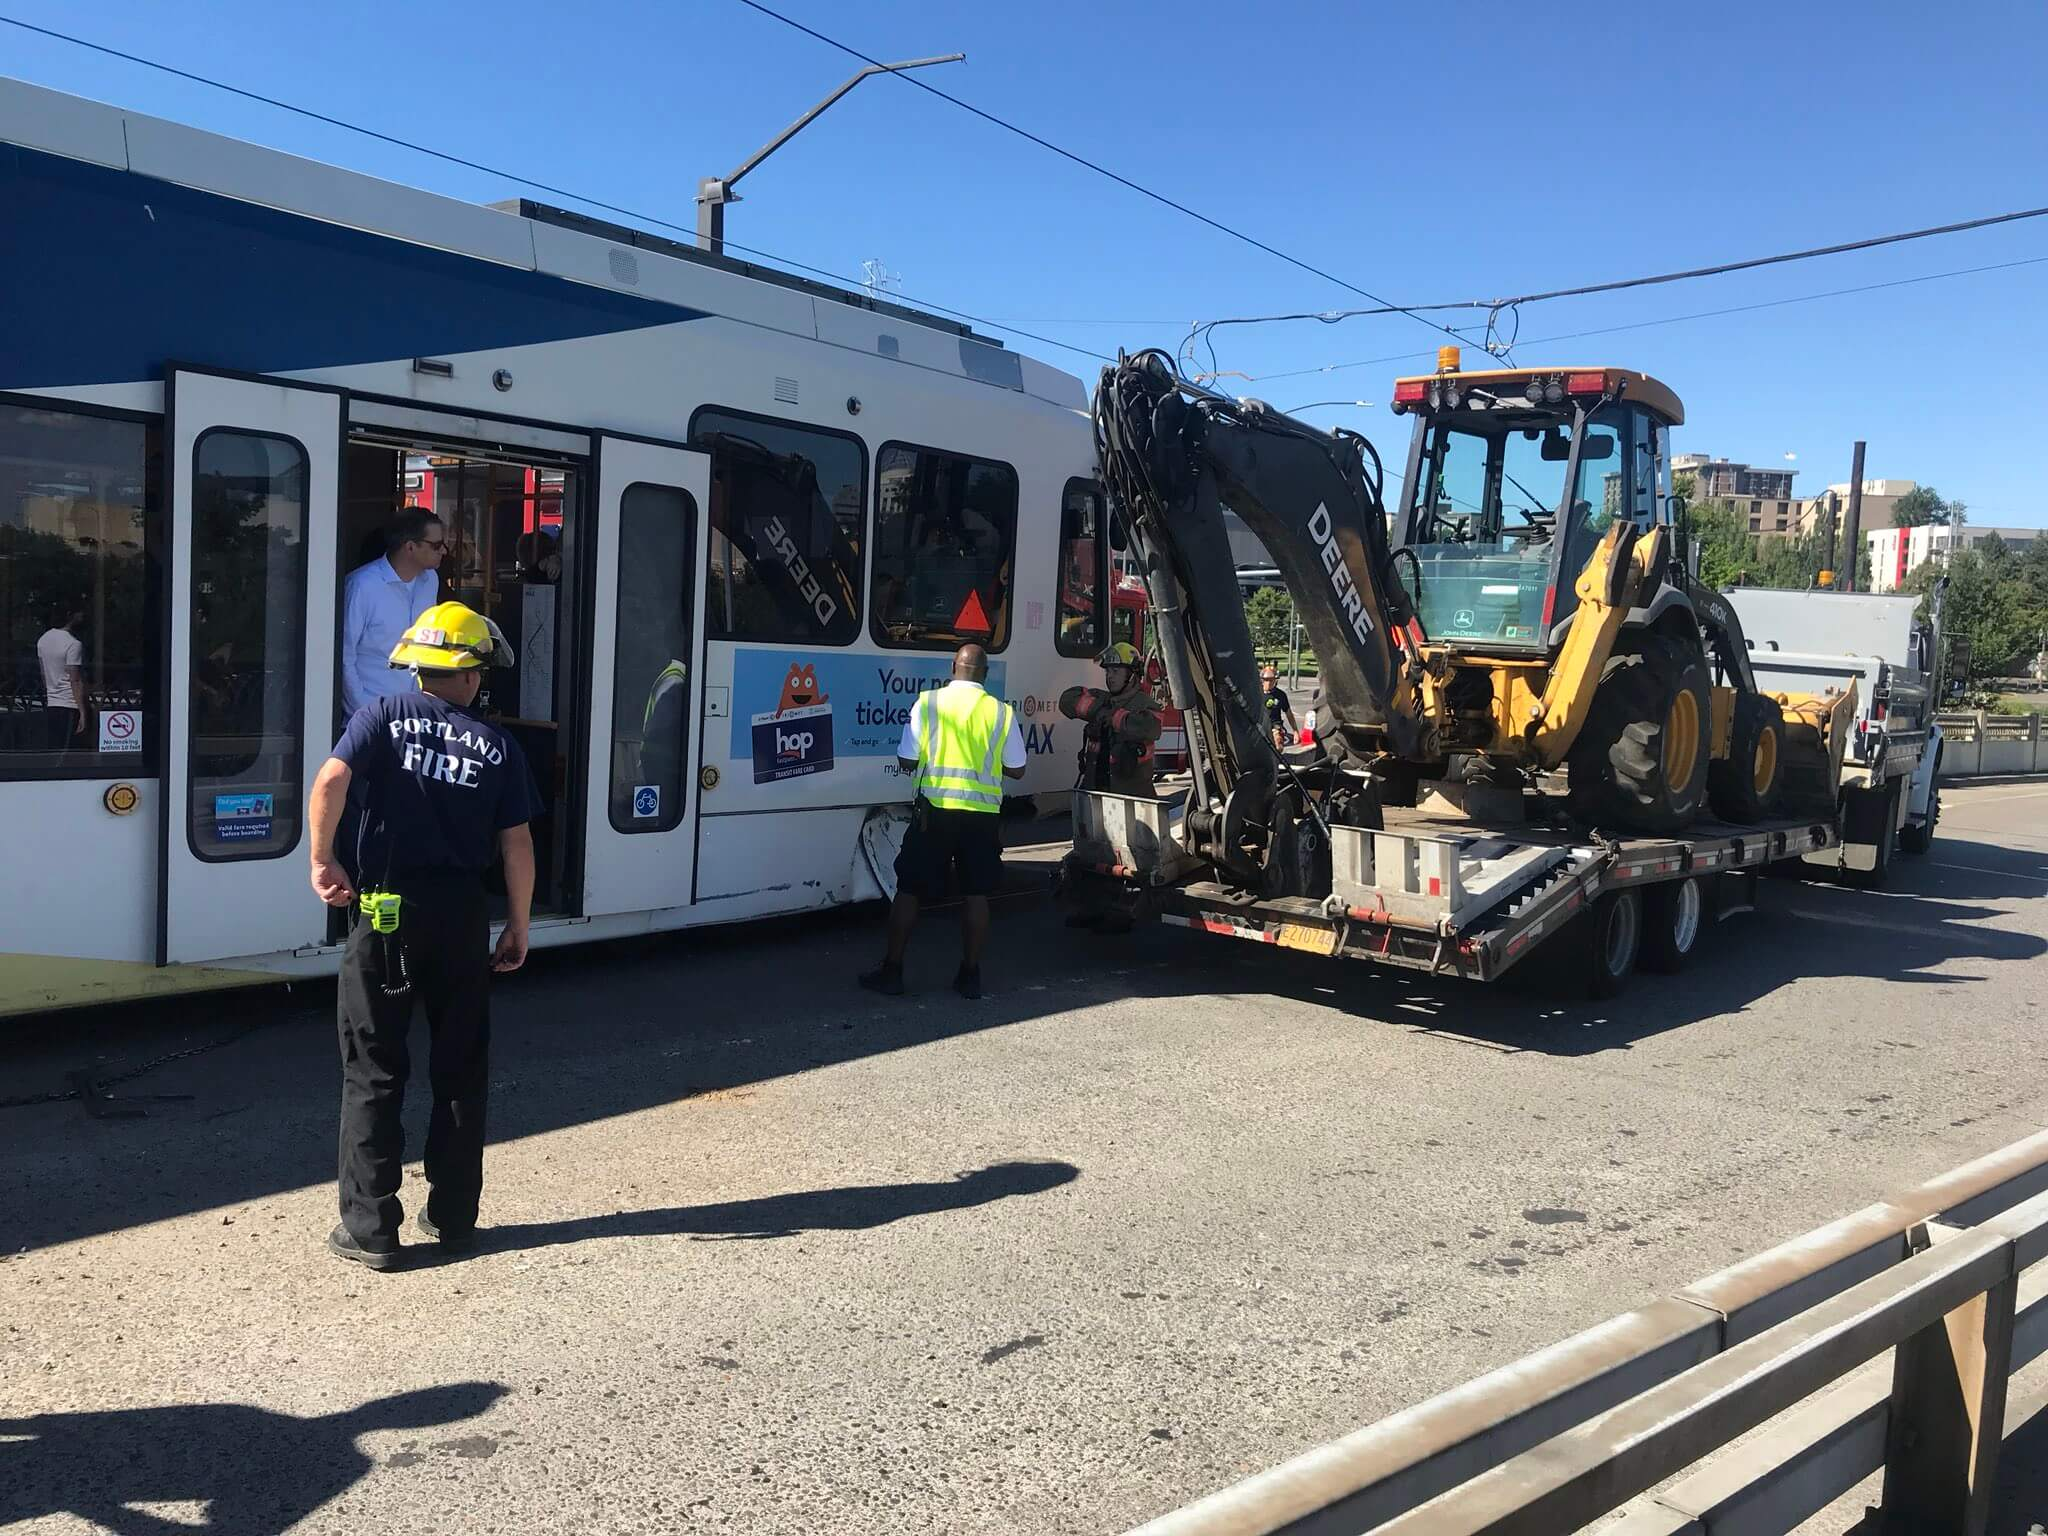 Commuter chaos: Crash shuts down Portland MAX LRT during PM rush hour